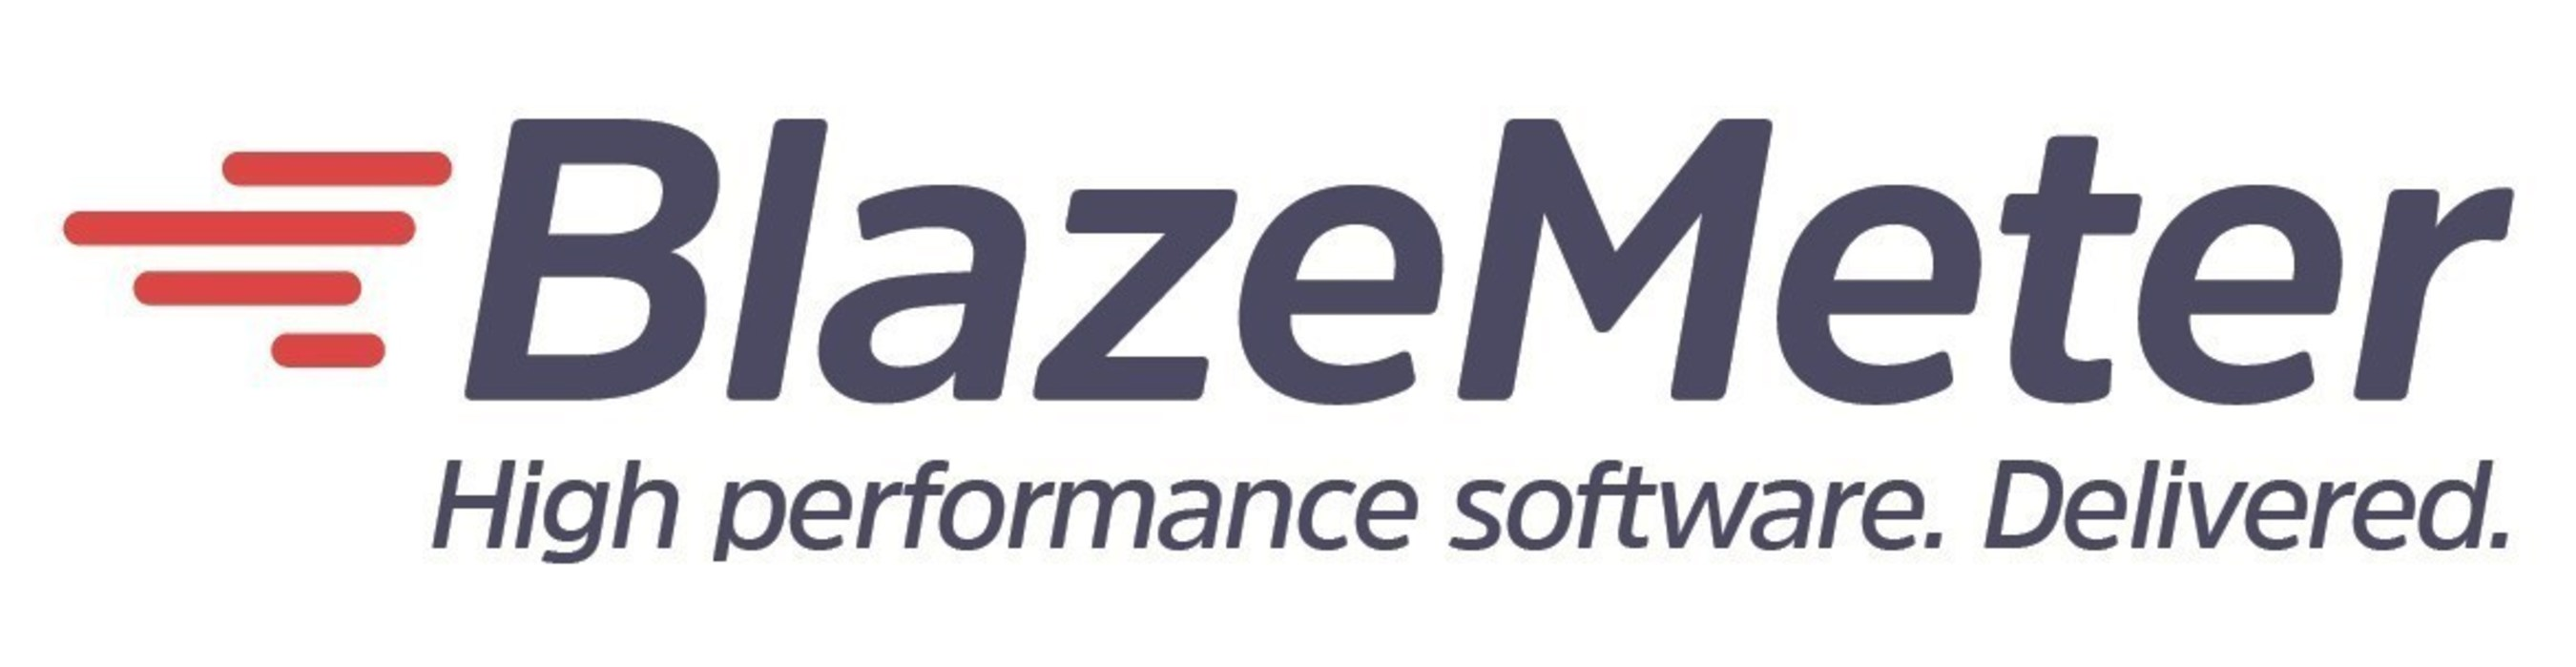 BlazeMeter Brings Next-Gen Continuous Performance Testing to DevOps, Experiences High Growth Velocity With Market Shift